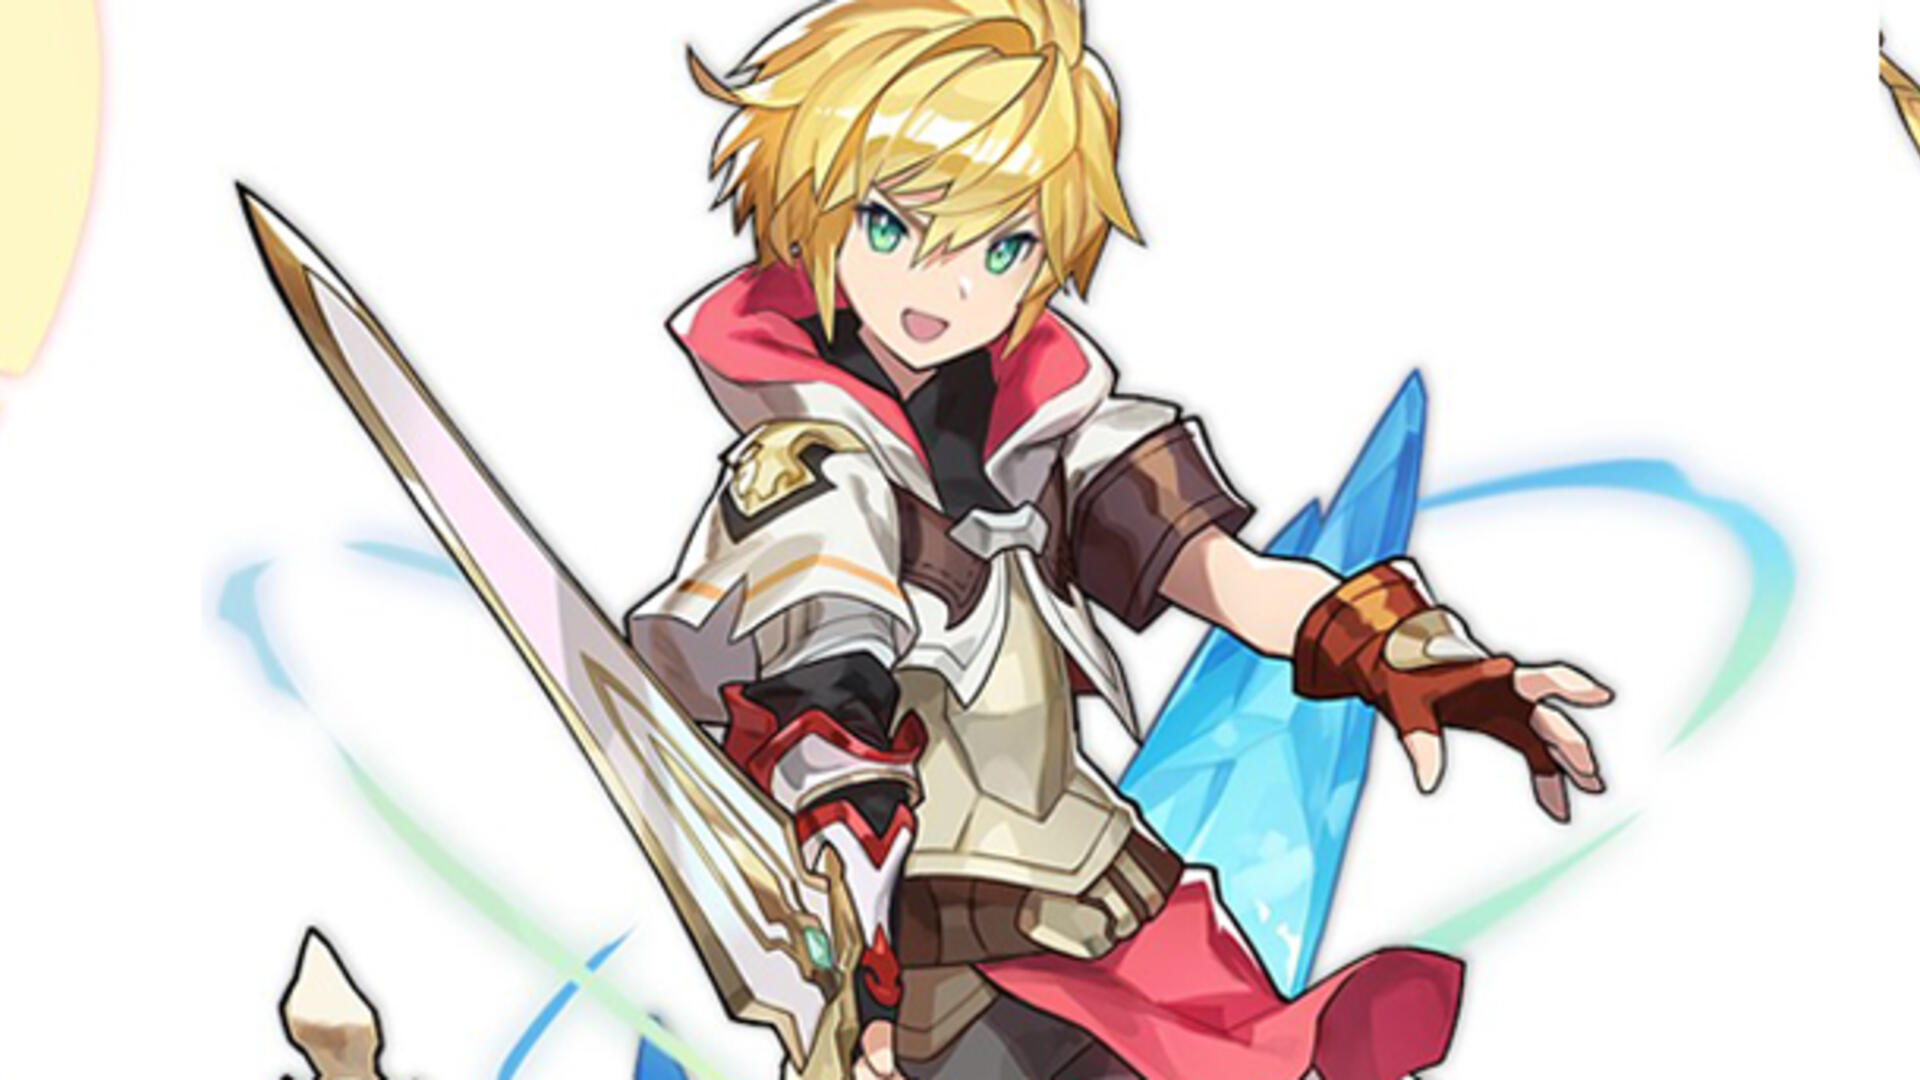 An Hour With Nintendo's New Mobile RPG Dragalia Lost: The Good, The Bad, The Microtransactions